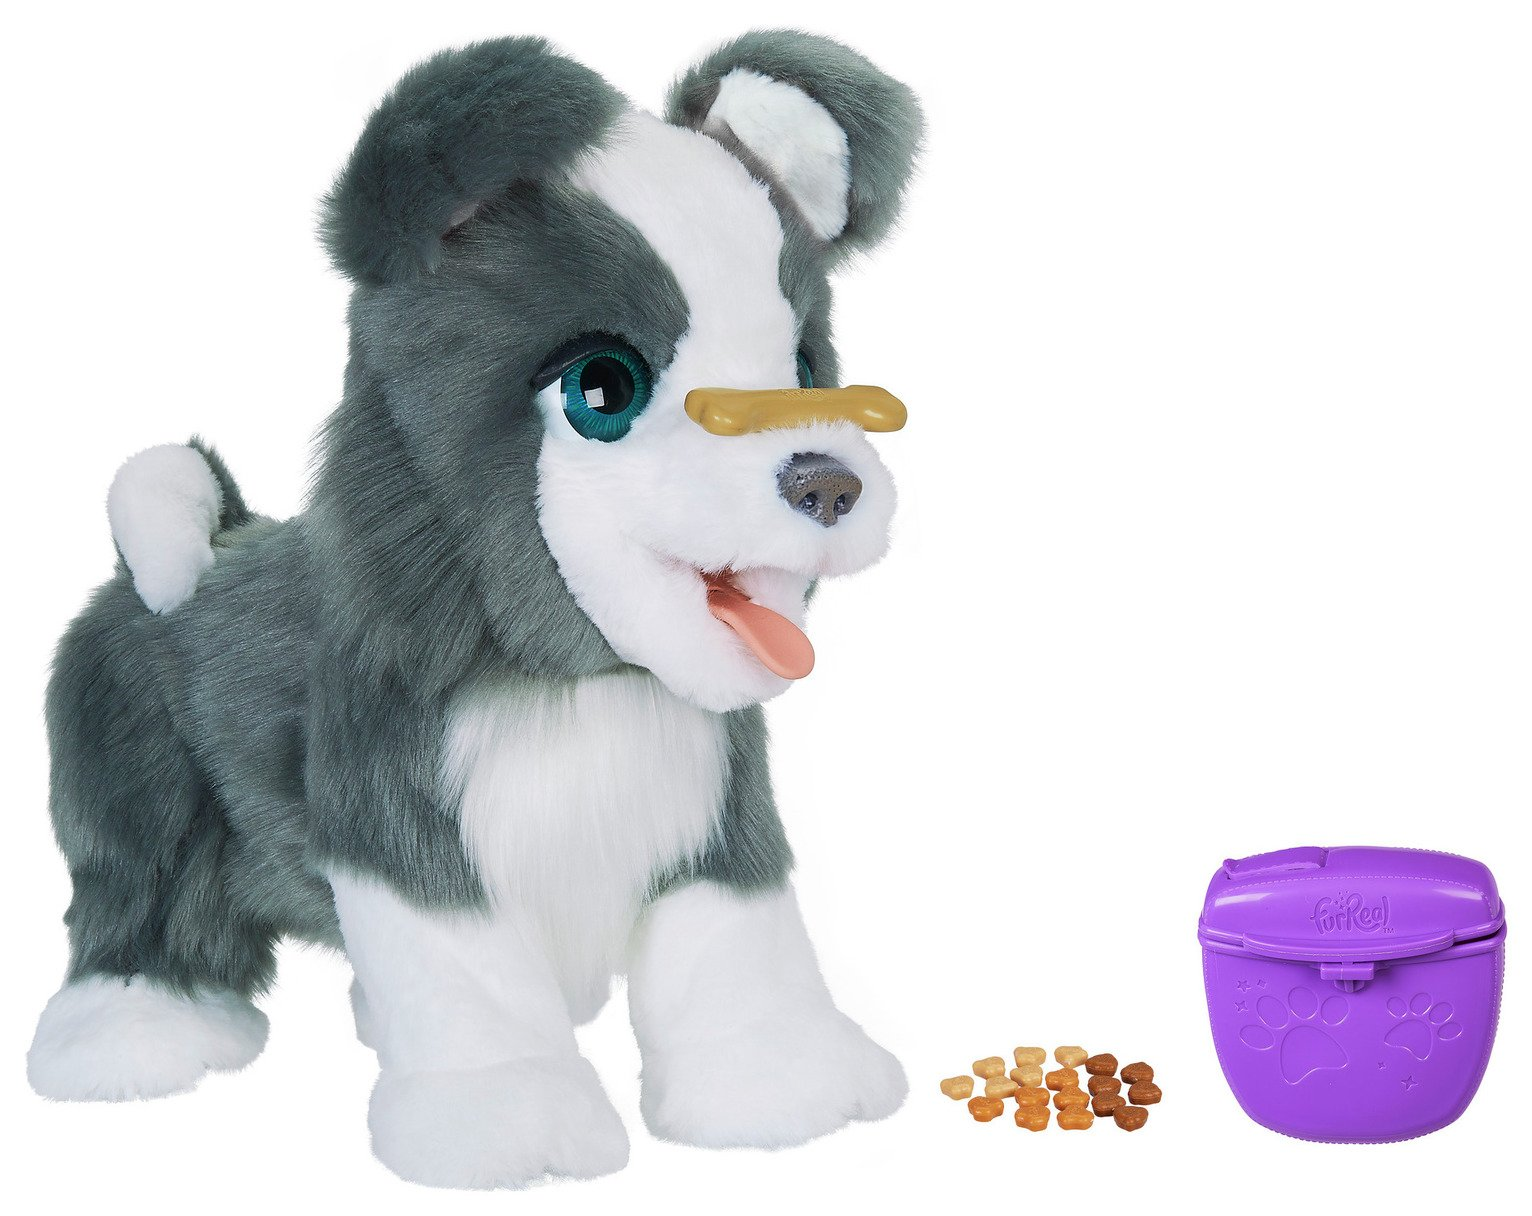 furReal Ricky, the Trick-Lovin' Pup from FurReal